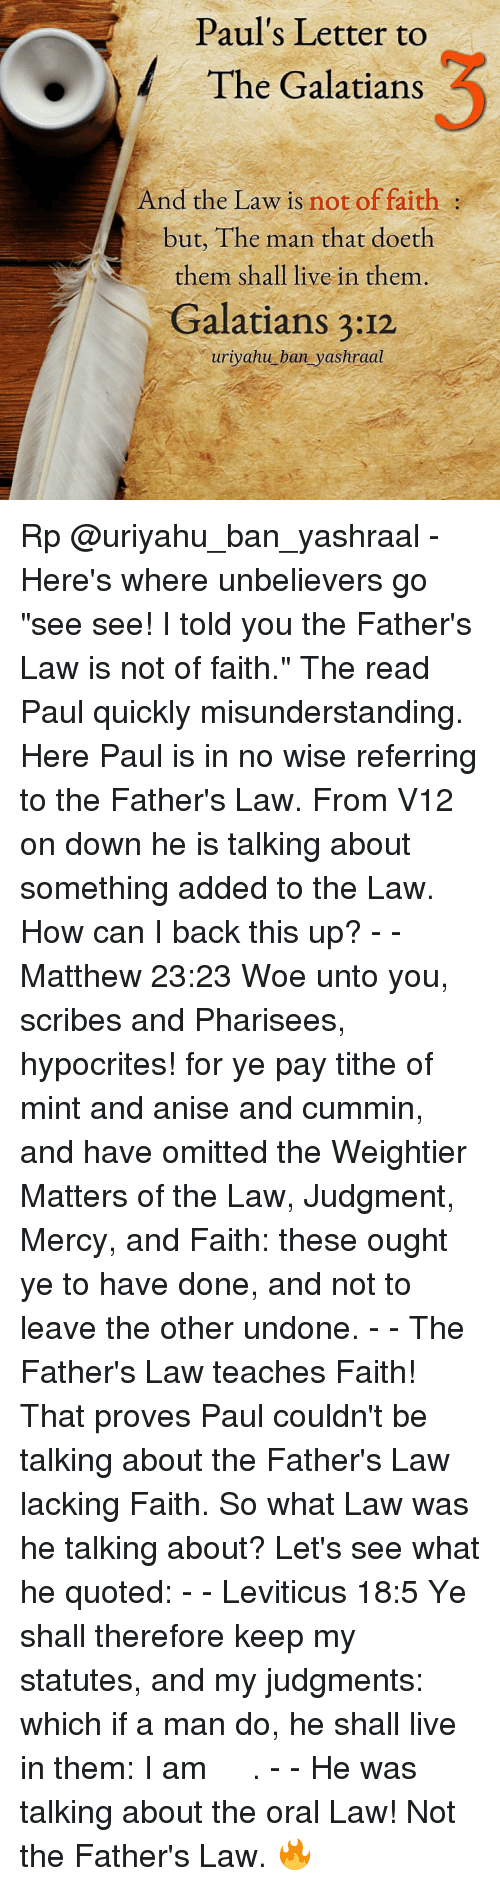 "Memes, Woes, and Hypocrite: Paul's Letter to  The Galatians  And the Law is  not of faith  but, The man that doeth  them shall live in them  Galatians 3:12  uriyahu ban yashraal Rp @uriyahu_ban_yashraal - Here's where unbelievers go ""see see! I told you the Father's Law is not of faith."" The read Paul quickly misunderstanding. Here Paul is in no wise referring to the Father's Law. From V12 on down he is talking about something added to the Law. How can I back this up? - - Matthew 23:23 Woe unto you, scribes and Pharisees, hypocrites! for ye pay tithe of mint and anise and cummin, and have omitted the Weightier Matters of the Law, Judgment, Mercy, and Faith: these ought ye to have done, and not to leave the other undone. - - The Father's Law teaches Faith! That proves Paul couldn't be talking about the Father's Law lacking Faith. So what Law was he talking about? Let's see what he quoted: - - Leviticus 18:5 Ye shall therefore keep my statutes, and my judgments: which if a man do, he shall live in them: I am יהוה. - - He was talking about the oral Law! Not the Father's Law. 🔥"